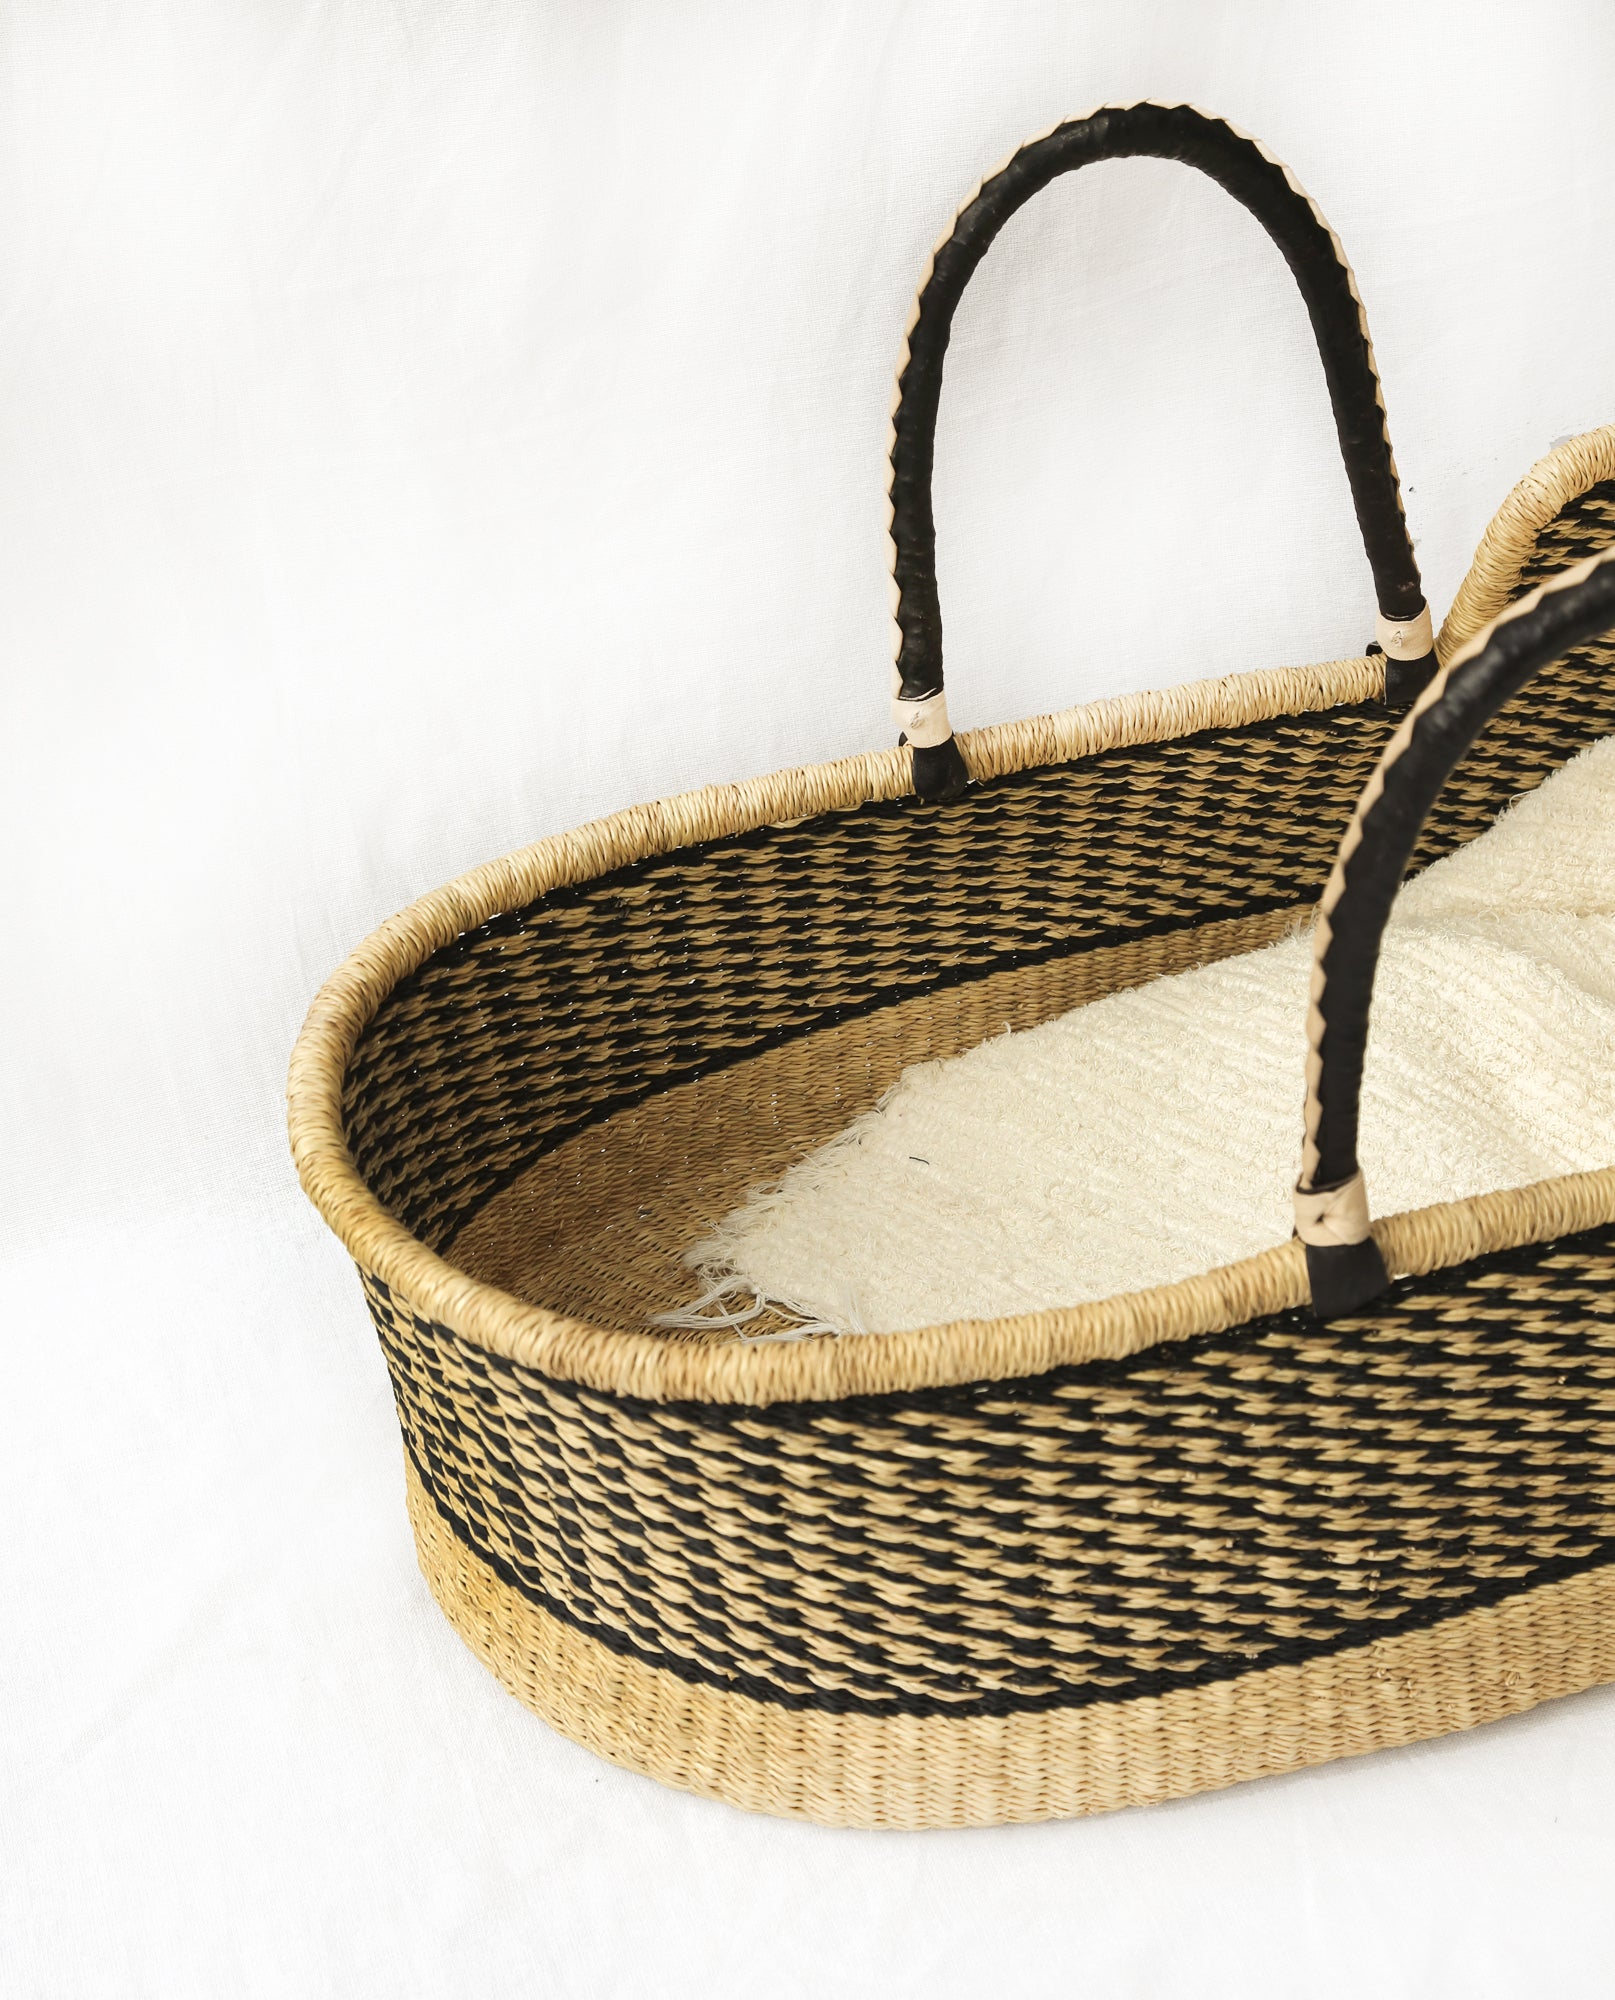 MONIFA Handwoven Moses Basket With Leather Handles